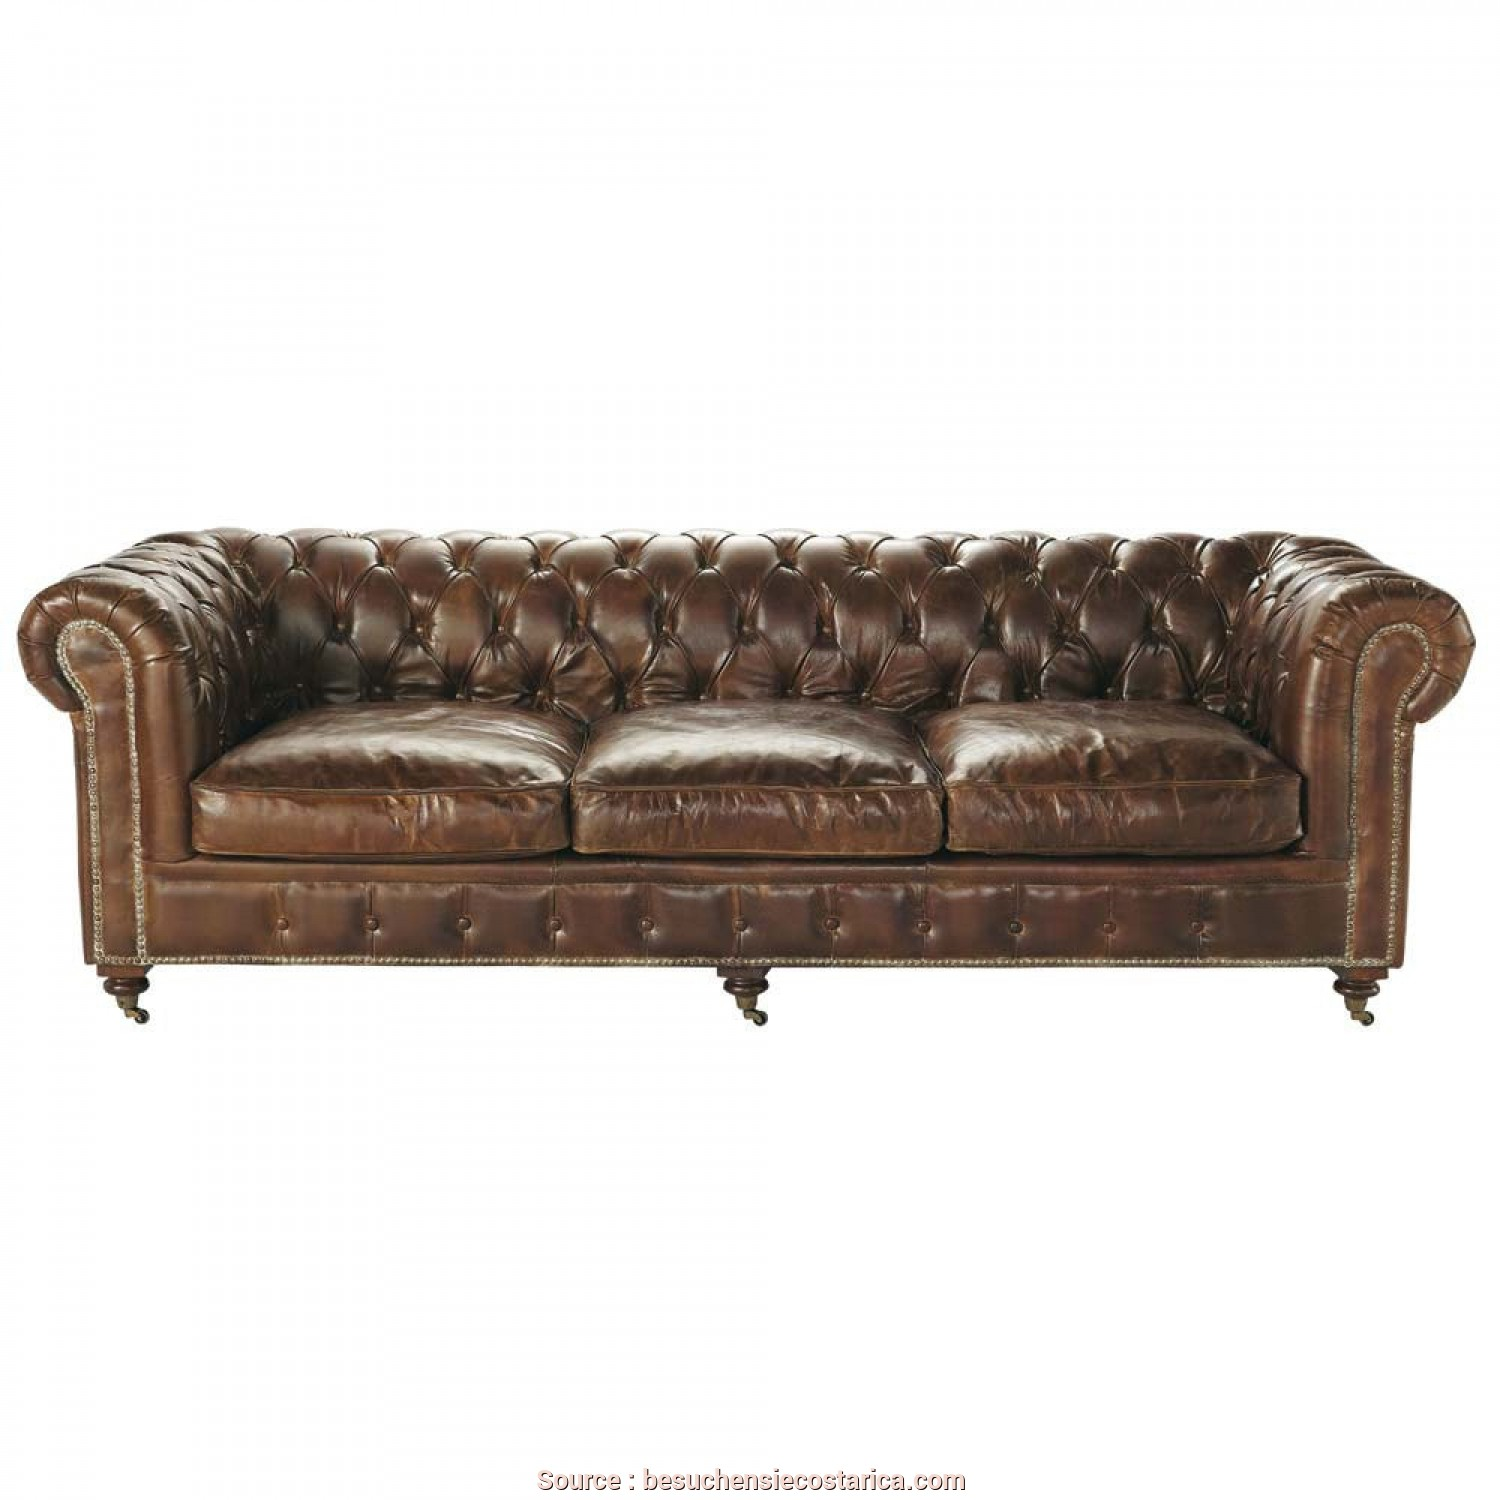 Divano 3 Posti Maison Du Monde, Stupefacente ... Sofas Maison Du Monde, Lager 4 Seater Chesterfield Leather Button Sofa In Brown Vintage